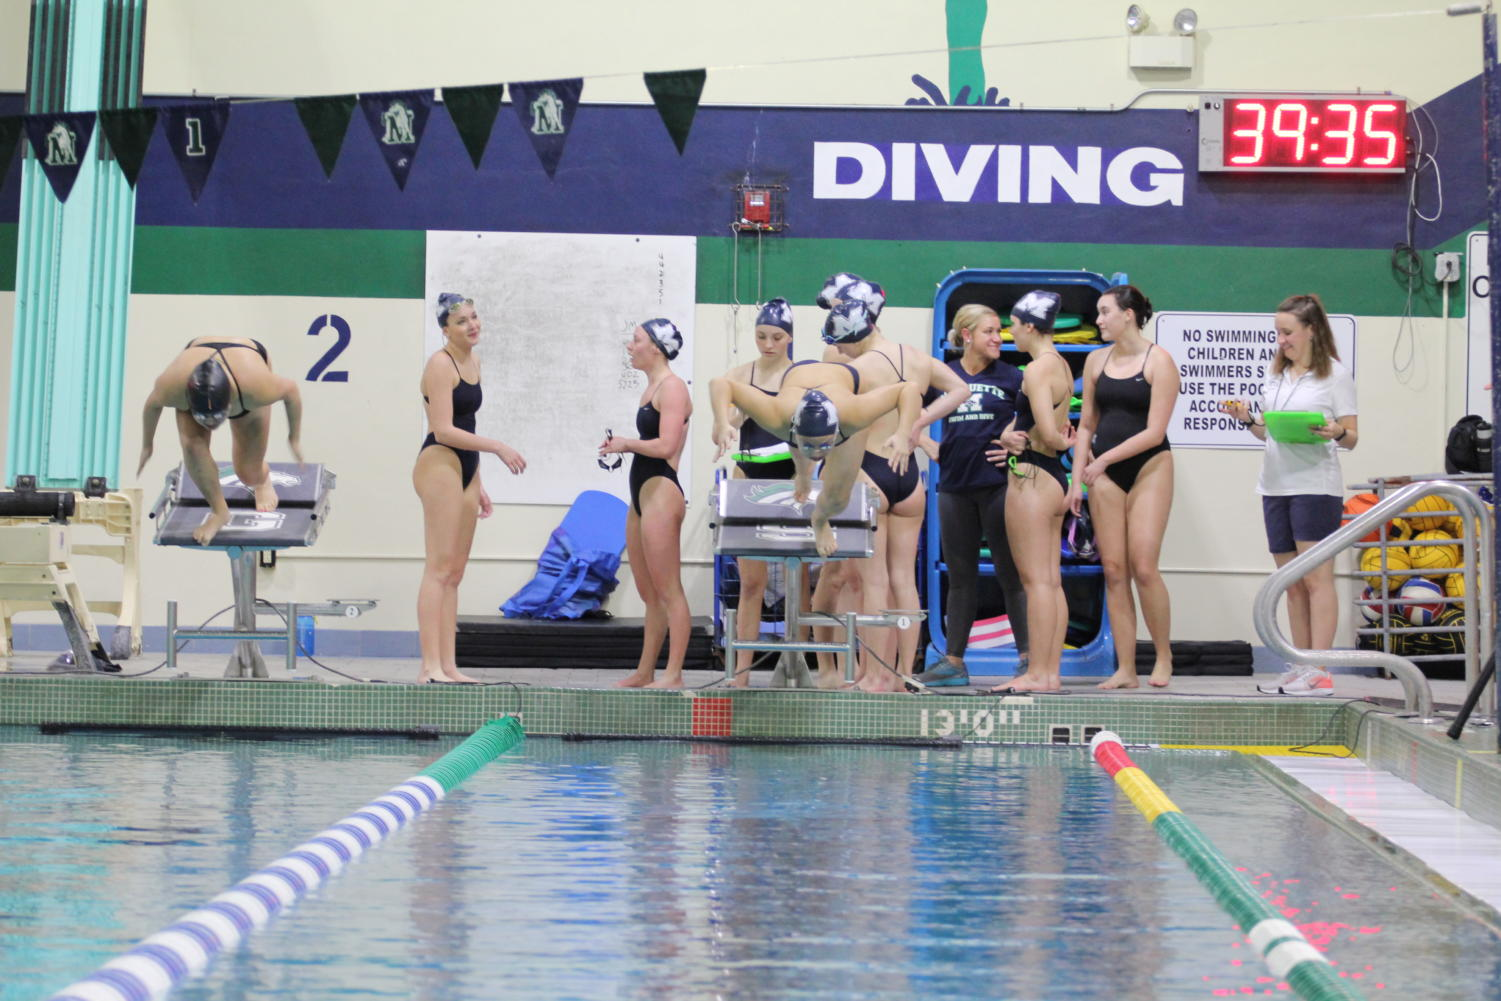 Diving+into+the+pool%2C+Amanda+Yu%2C+junior%2C+begins+her+100-meter+breast+event.+She+reflected+over+the+various+events+she+swam+this+meet.+%E2%80%9CI+am+happy+with+how+I+performed%2C+but+right+now+we+are+working+towards+State%2C+which+has+been+the+primary+focus+of+the+season%2C%E2%80%9D+Yu+said.+%0A%0A